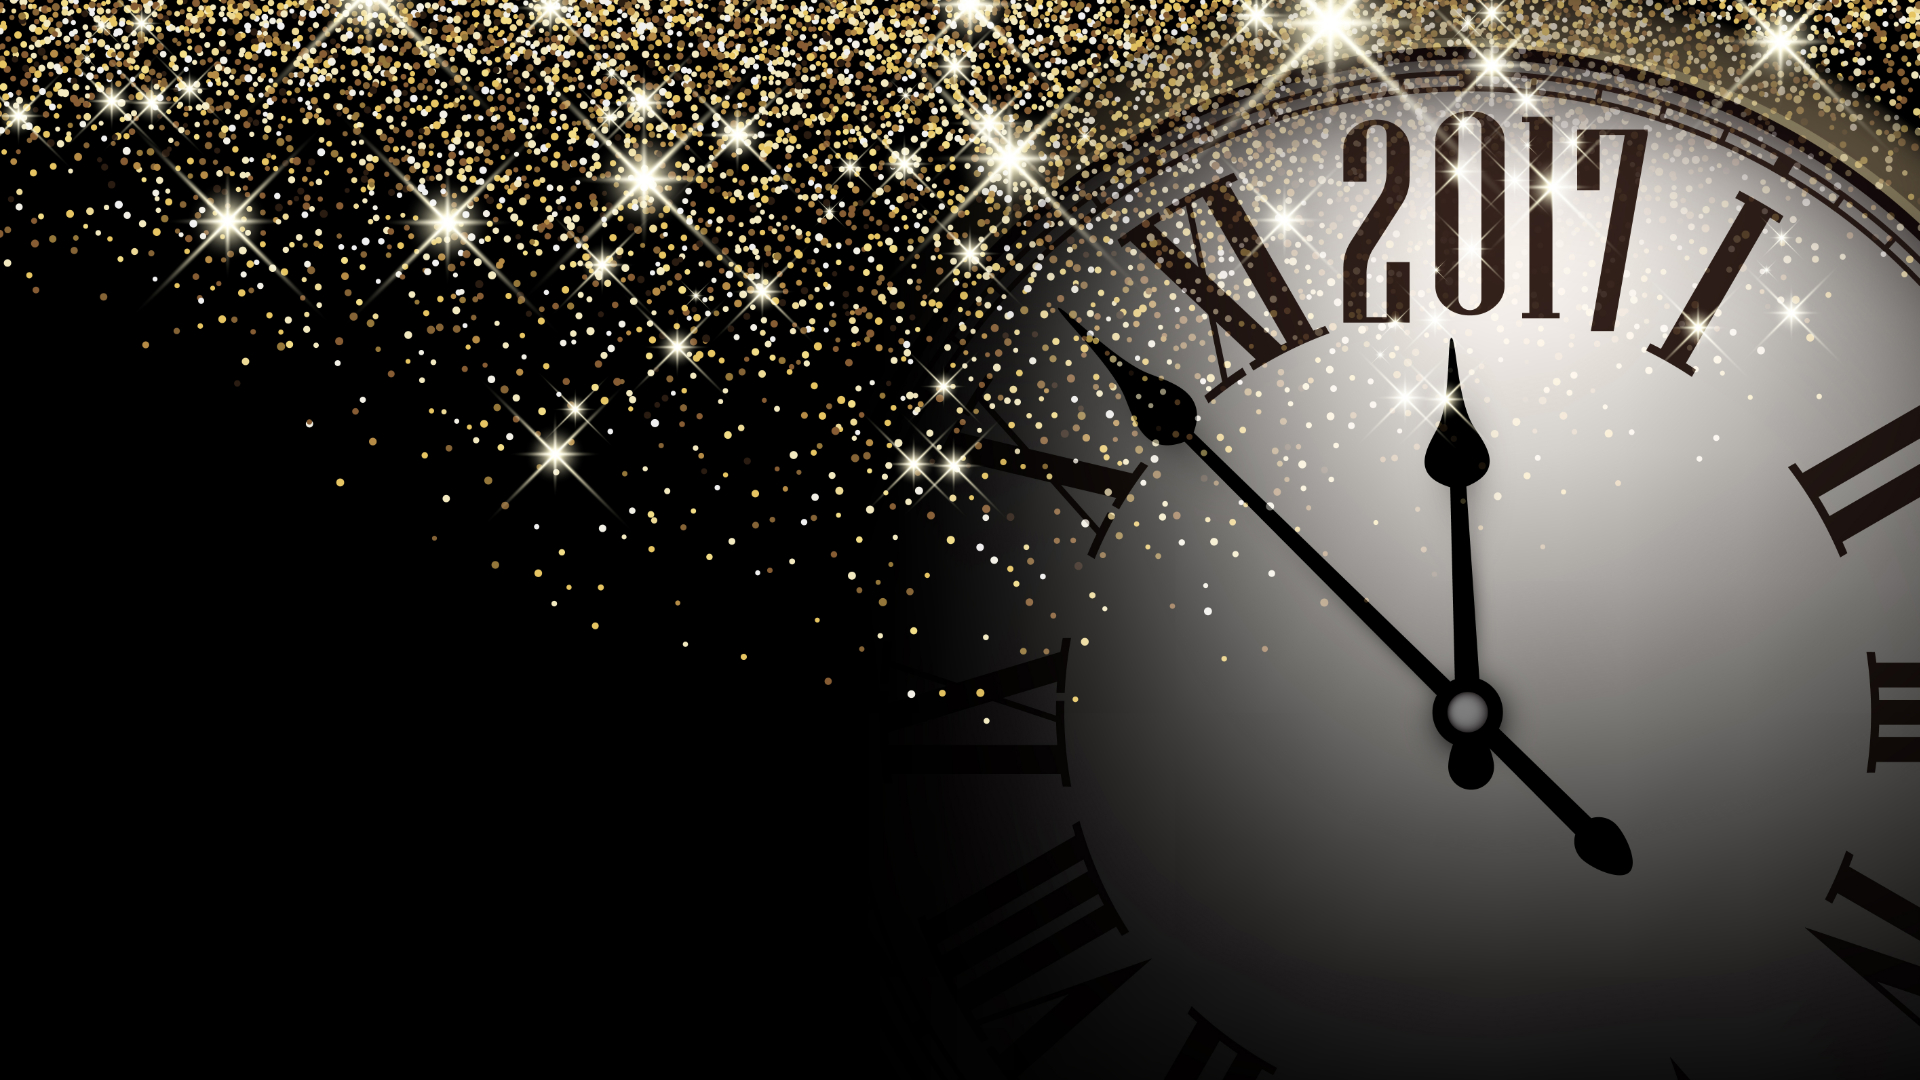 Black 2017 New Year shining background with clock. Vector illustration.